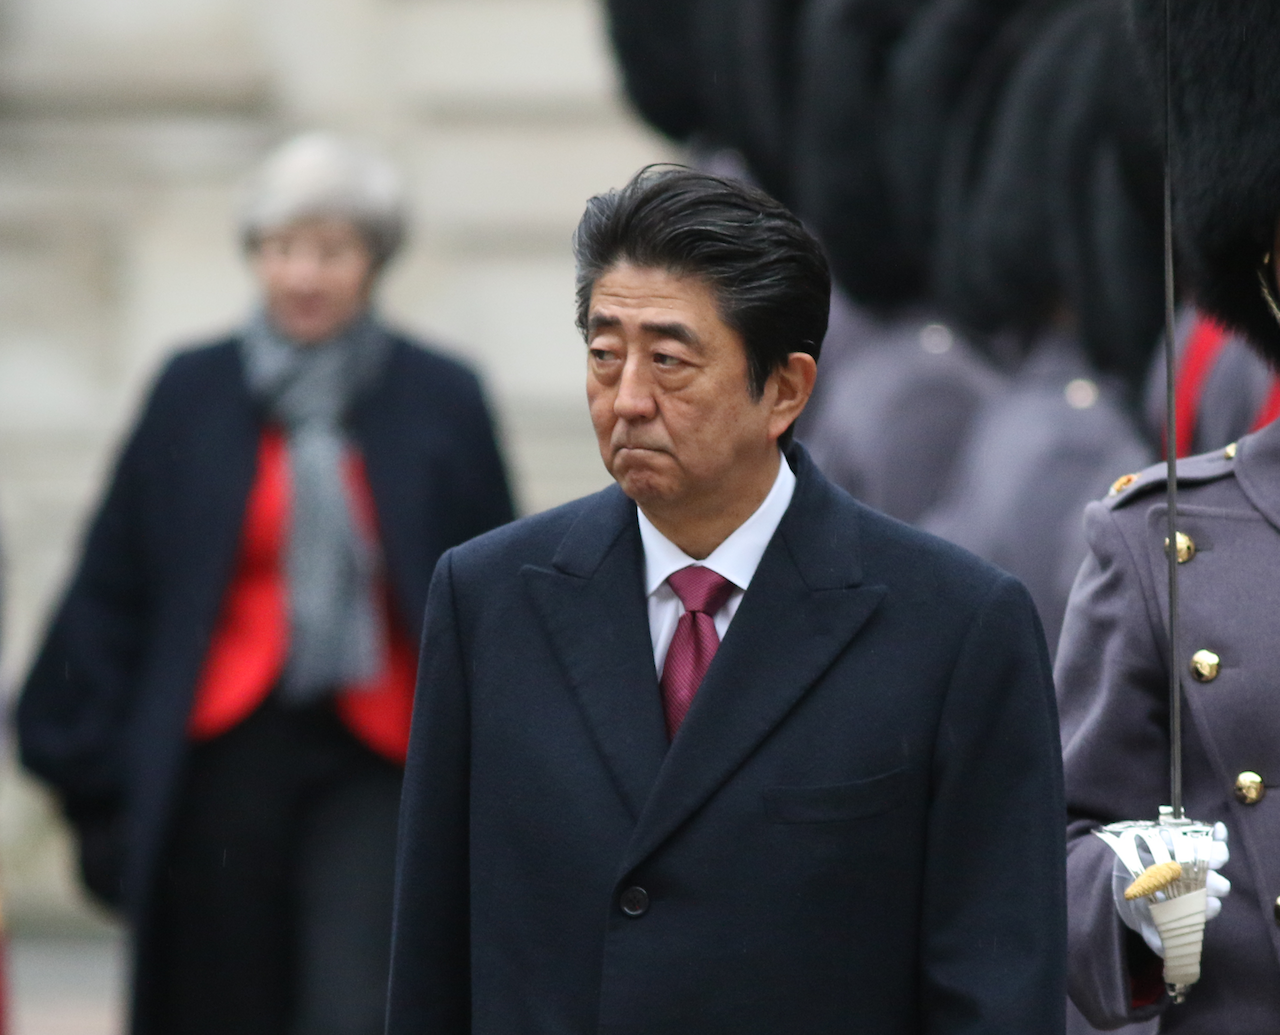 安倍晉三(圖/Foreign and Commonwealth Office/CC BY 2.0)